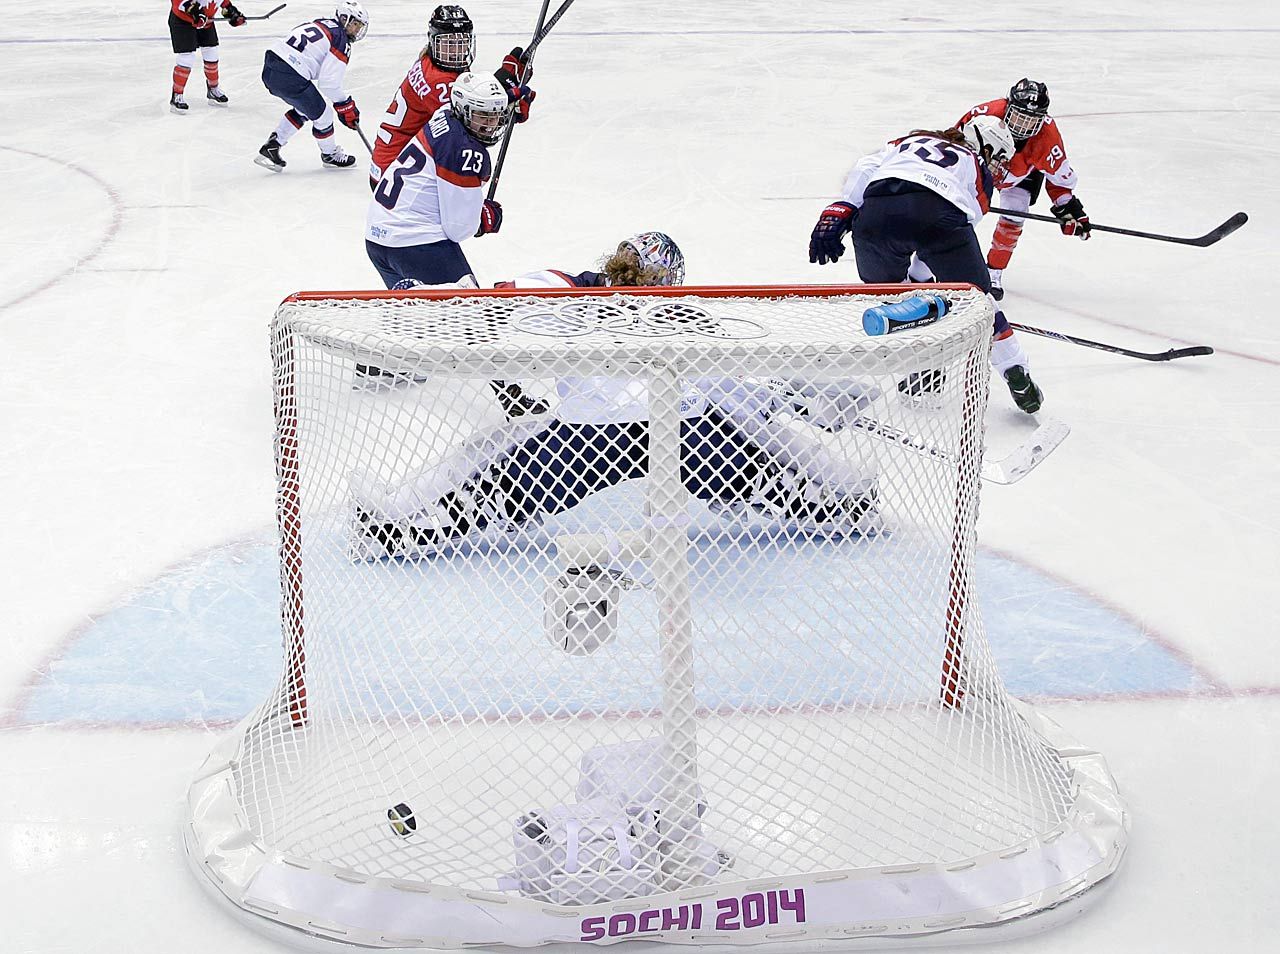 Marie-Philip Poulin of Canada (29) scores the game-winning goal in overtime.